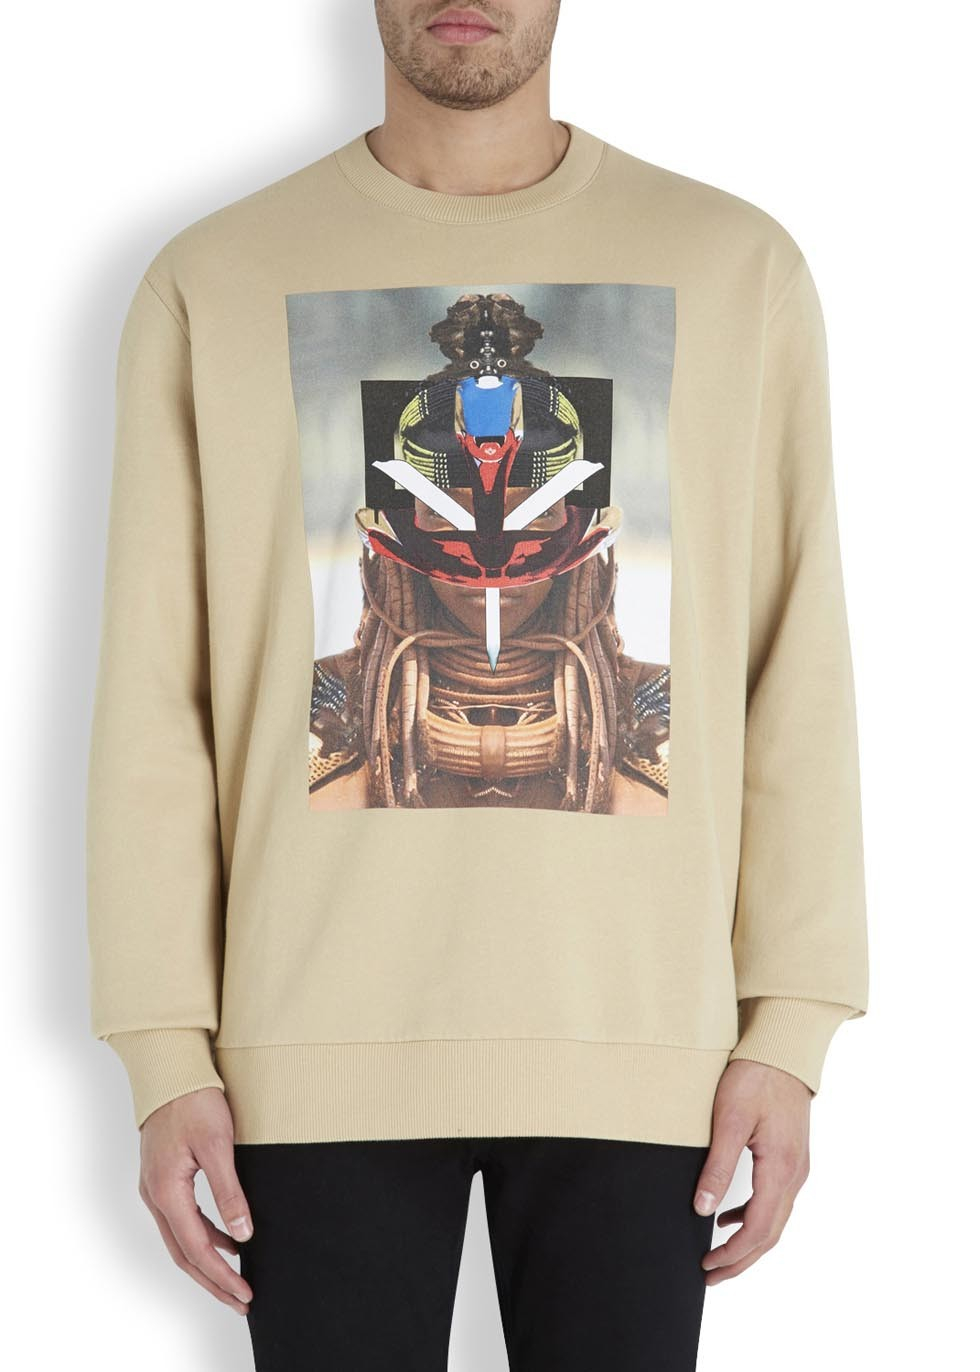 Givenchy Graphic Print Sweater in Beige (Natural) for Men